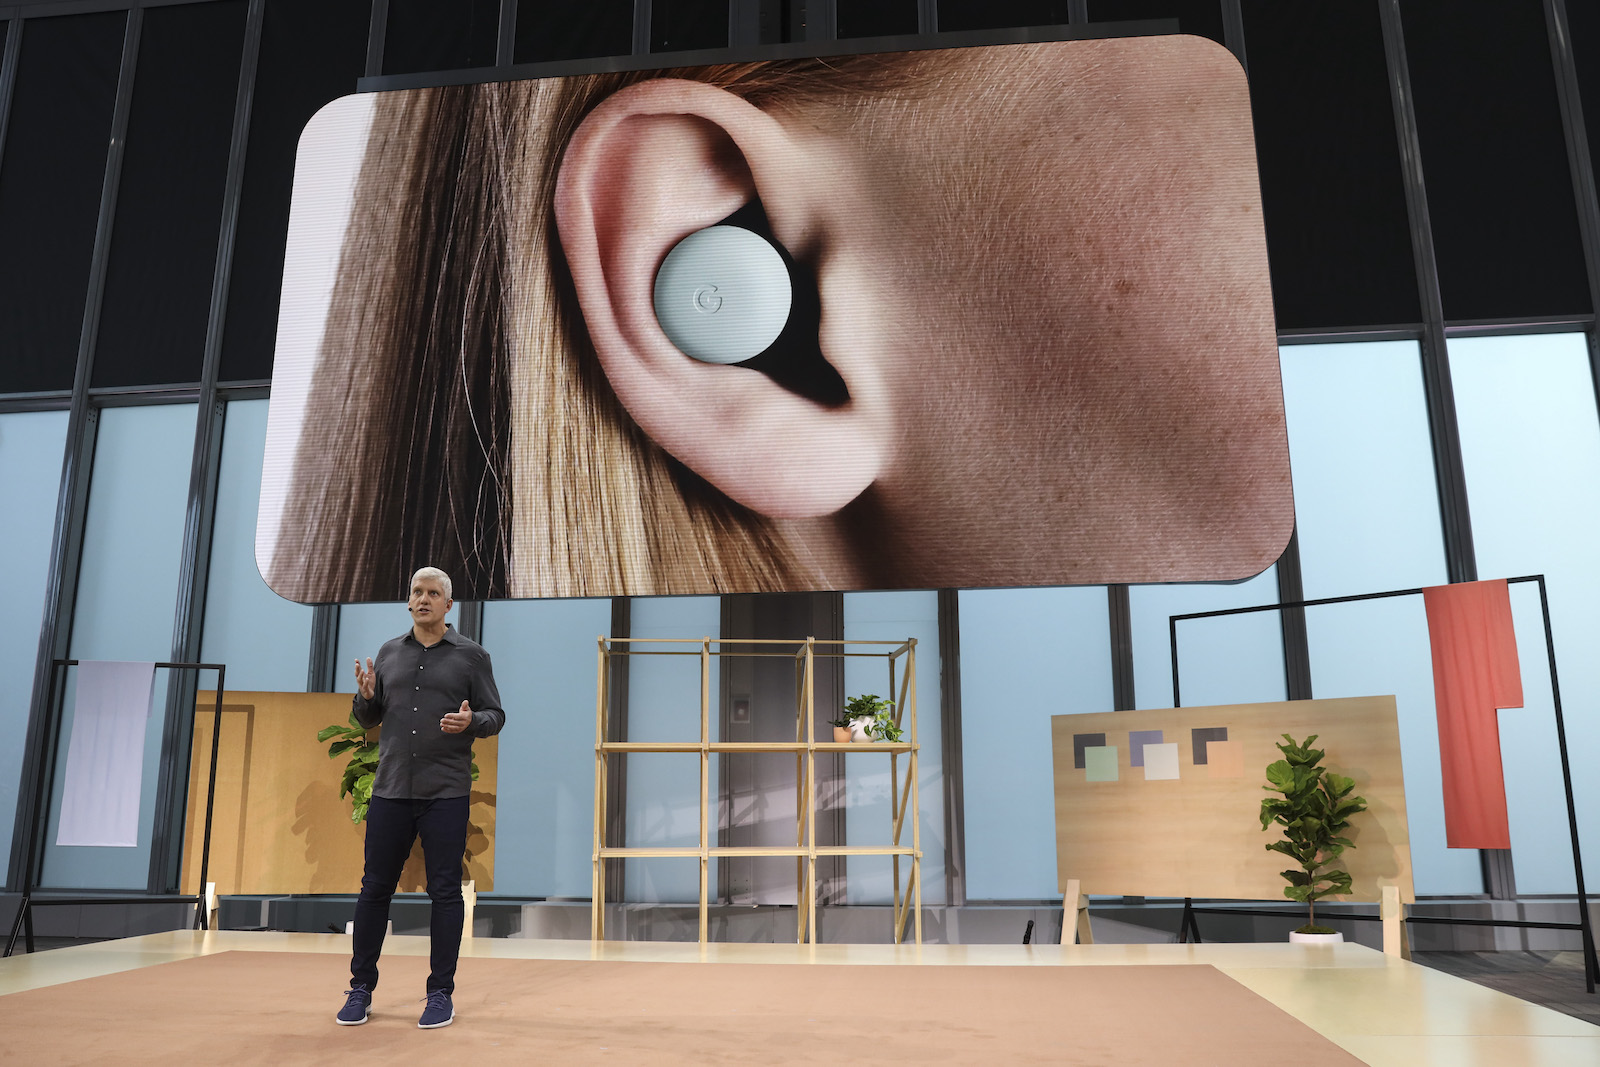 NEW YORK, NY-OCTOBER 15: Rick Osterloh, SVP of devices and services at Google, discusses the new Google Pixel Buds ear pods during a Google launch event on October 15, 2019 in New York City. Google's new ear buds will be released in Spring 2020 and retail for $179. (Photo by Drew Angerer/Getty Images)